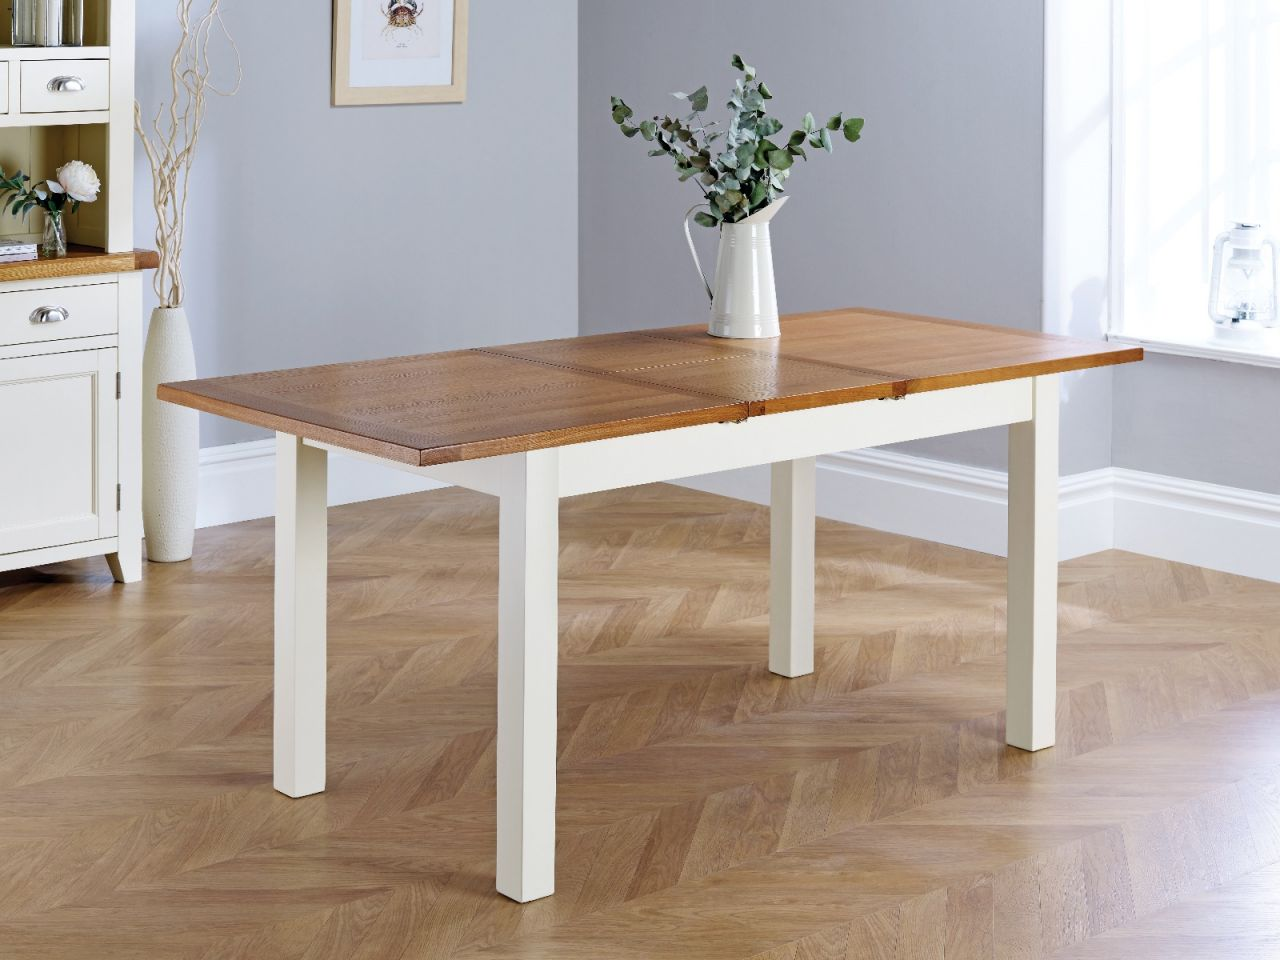 Country Oak 1 4m 1 8m Butterfly Extending Cream Painted